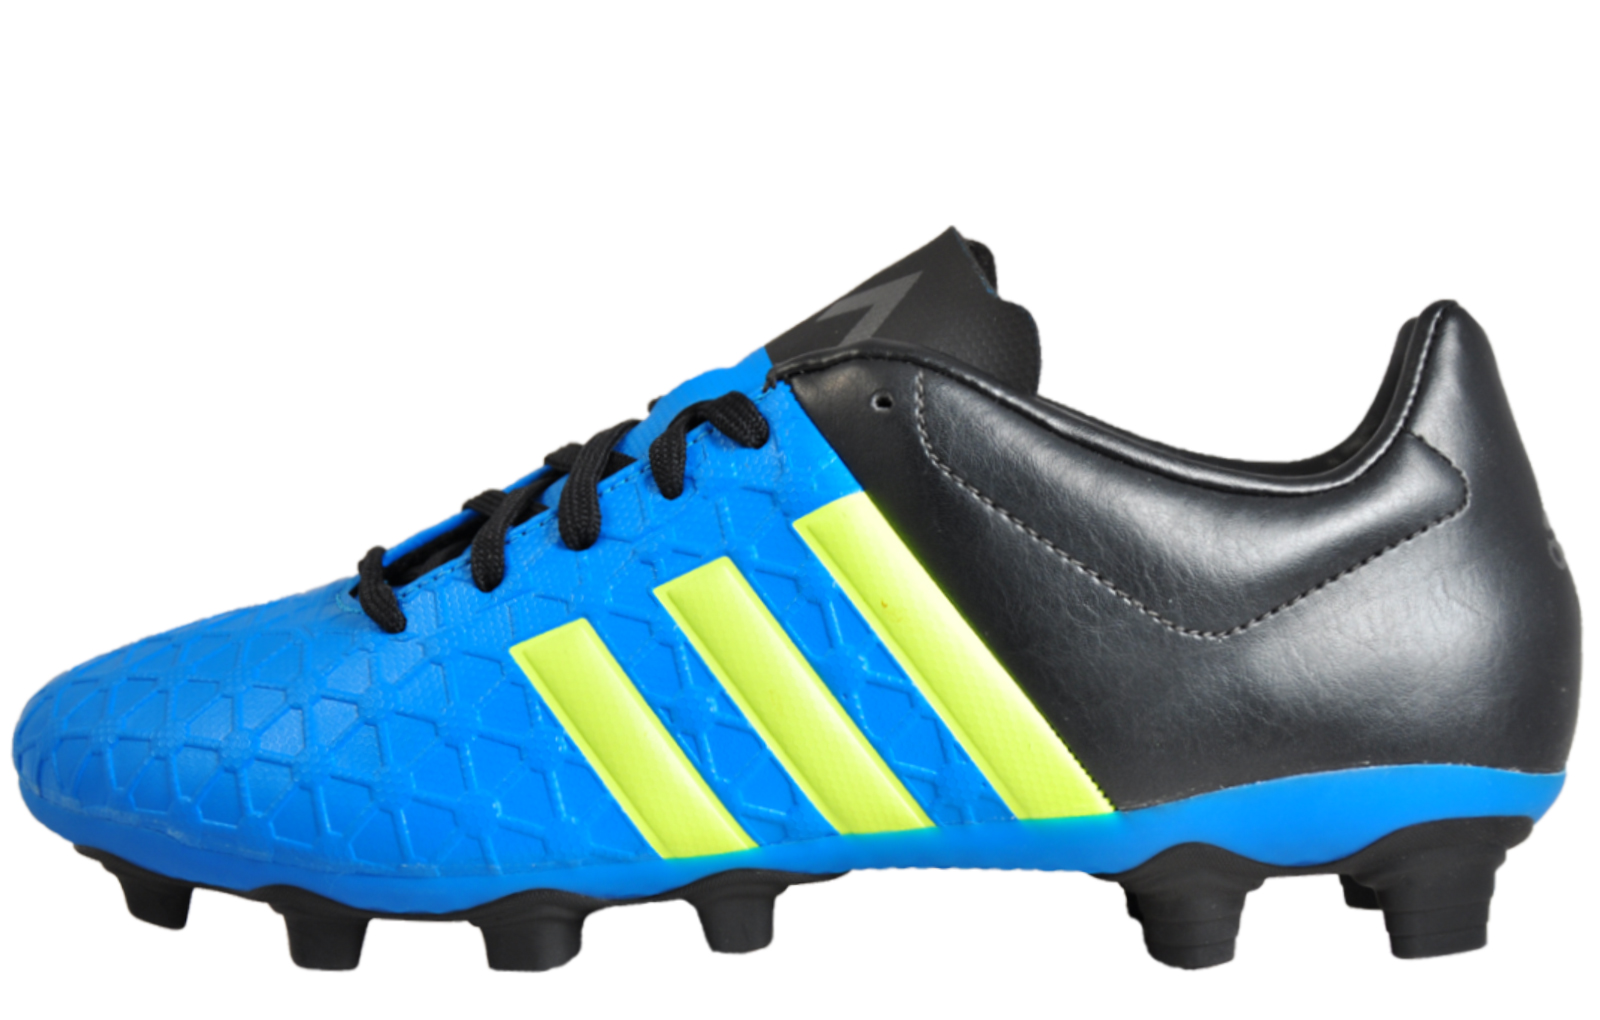 Adidas Ace 15.4 FXG Mens - AD173575